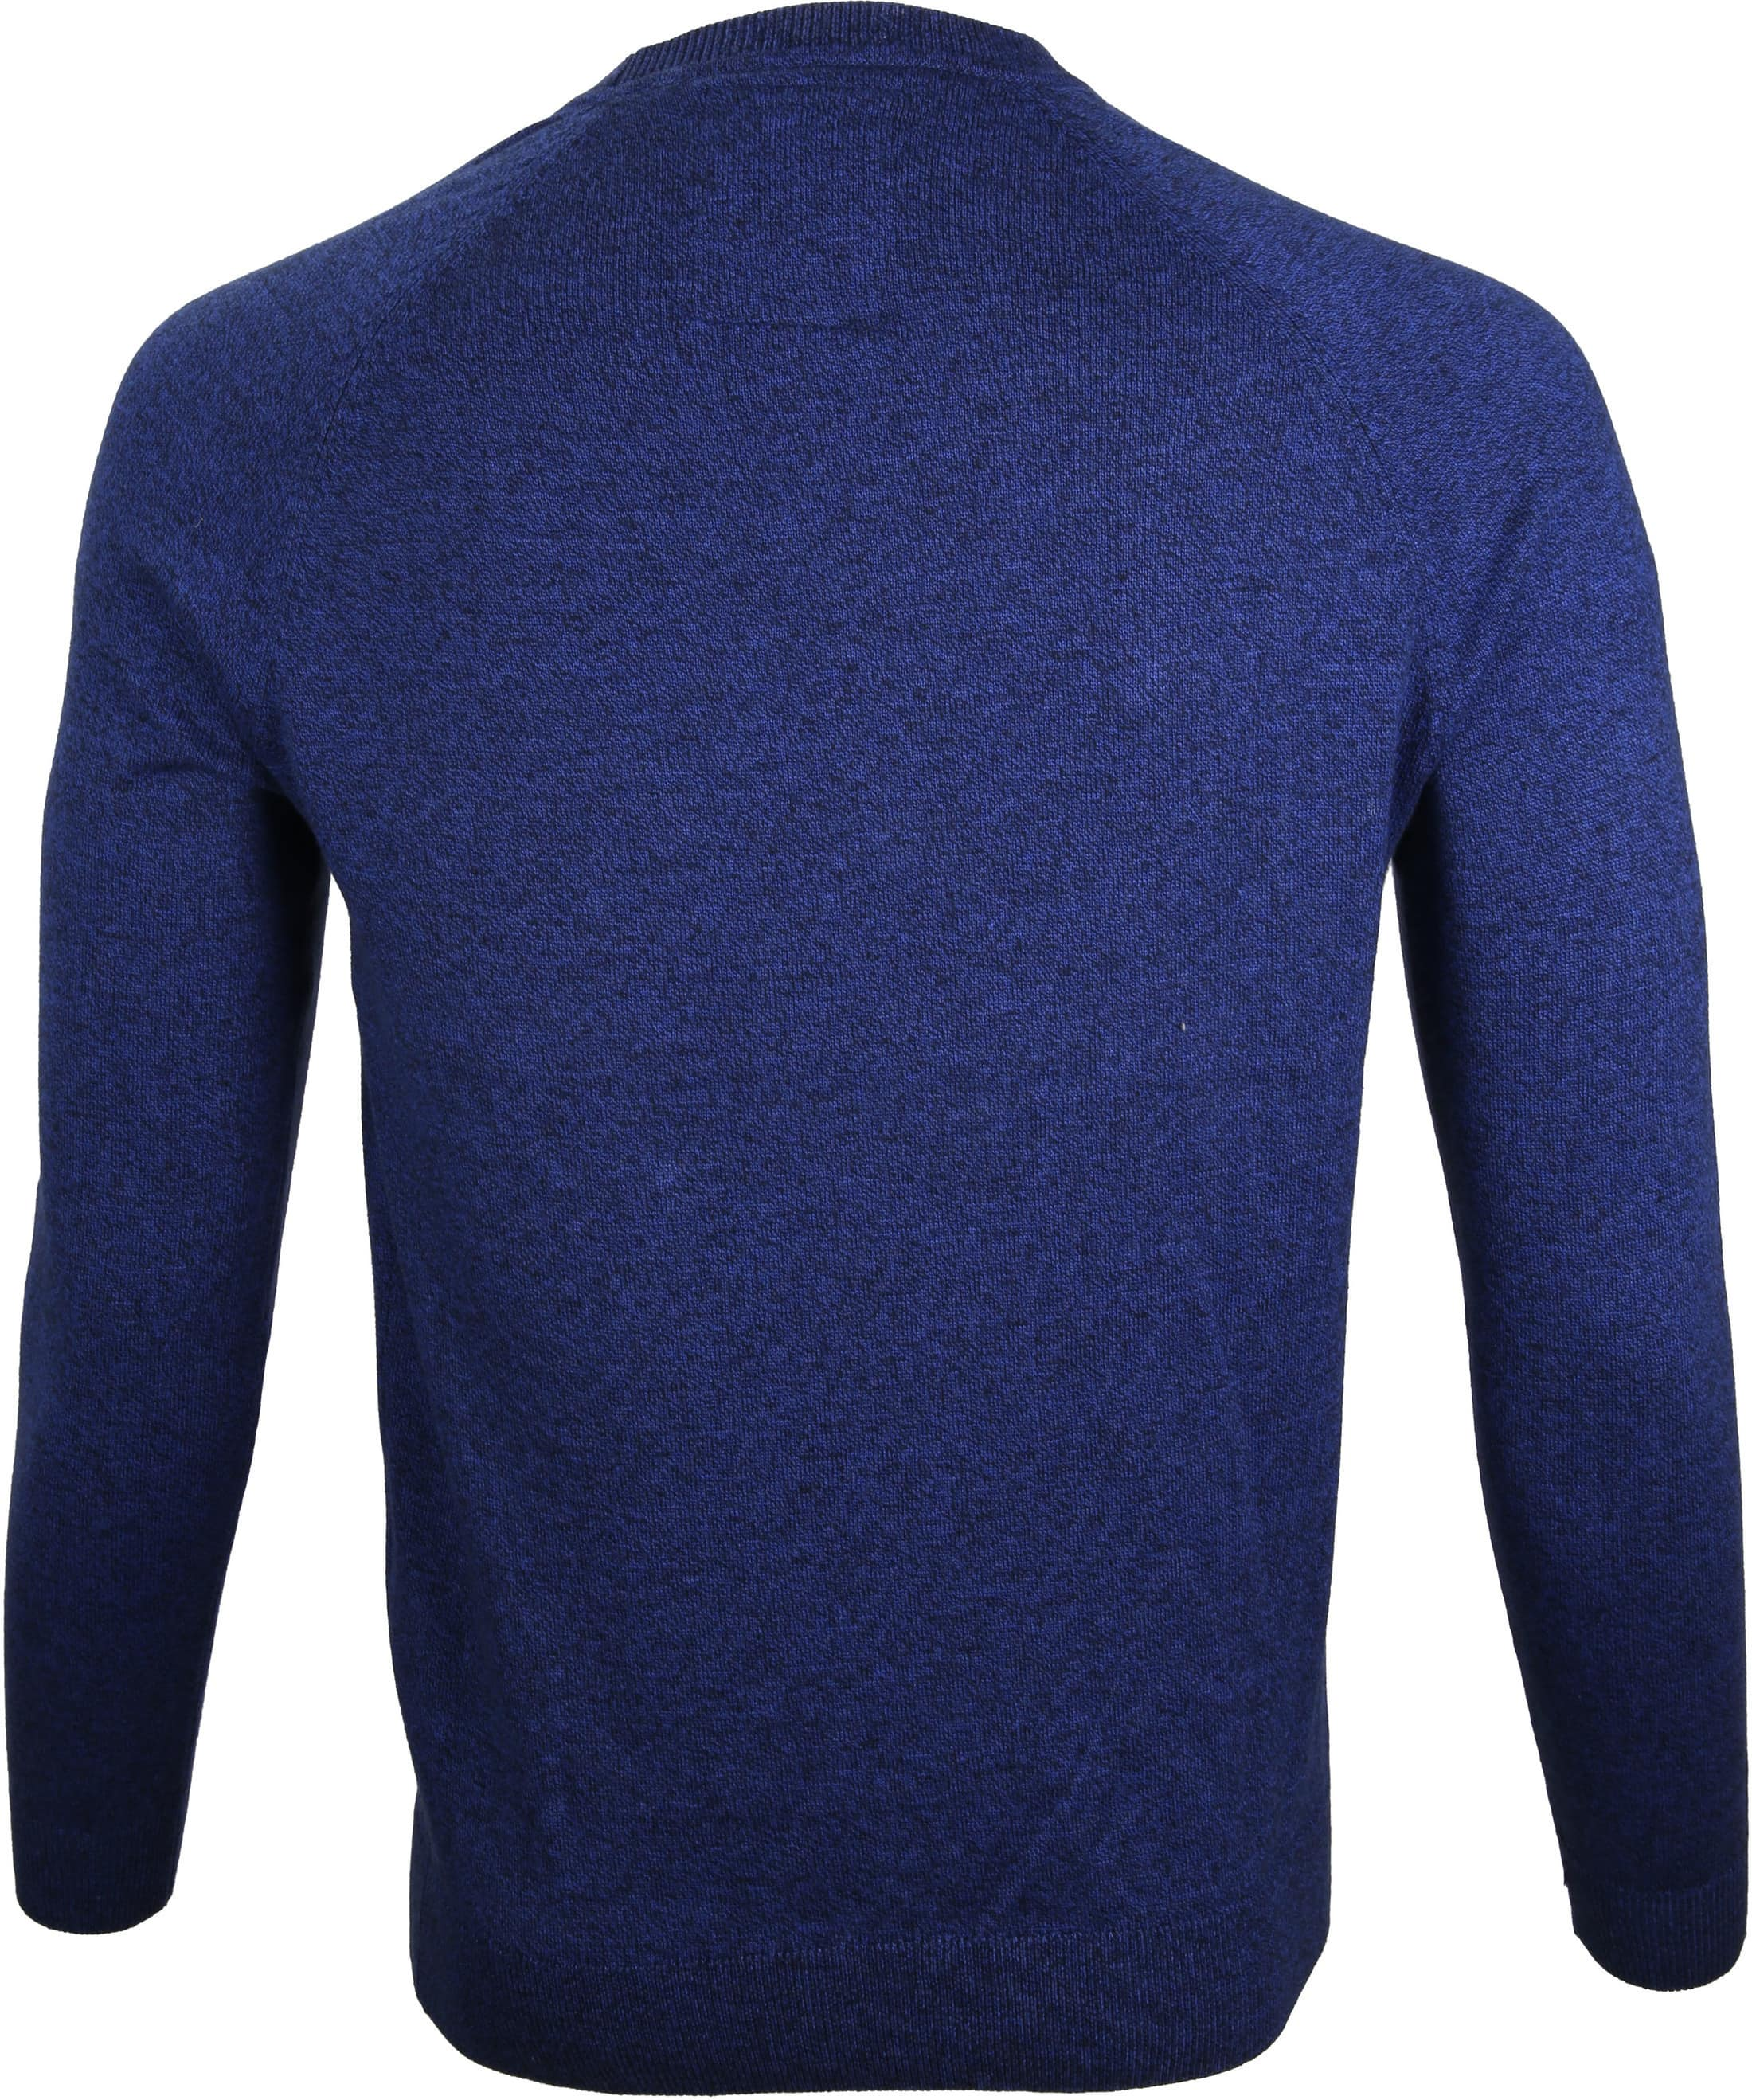 Superdry Sweater Melange Blue foto 4